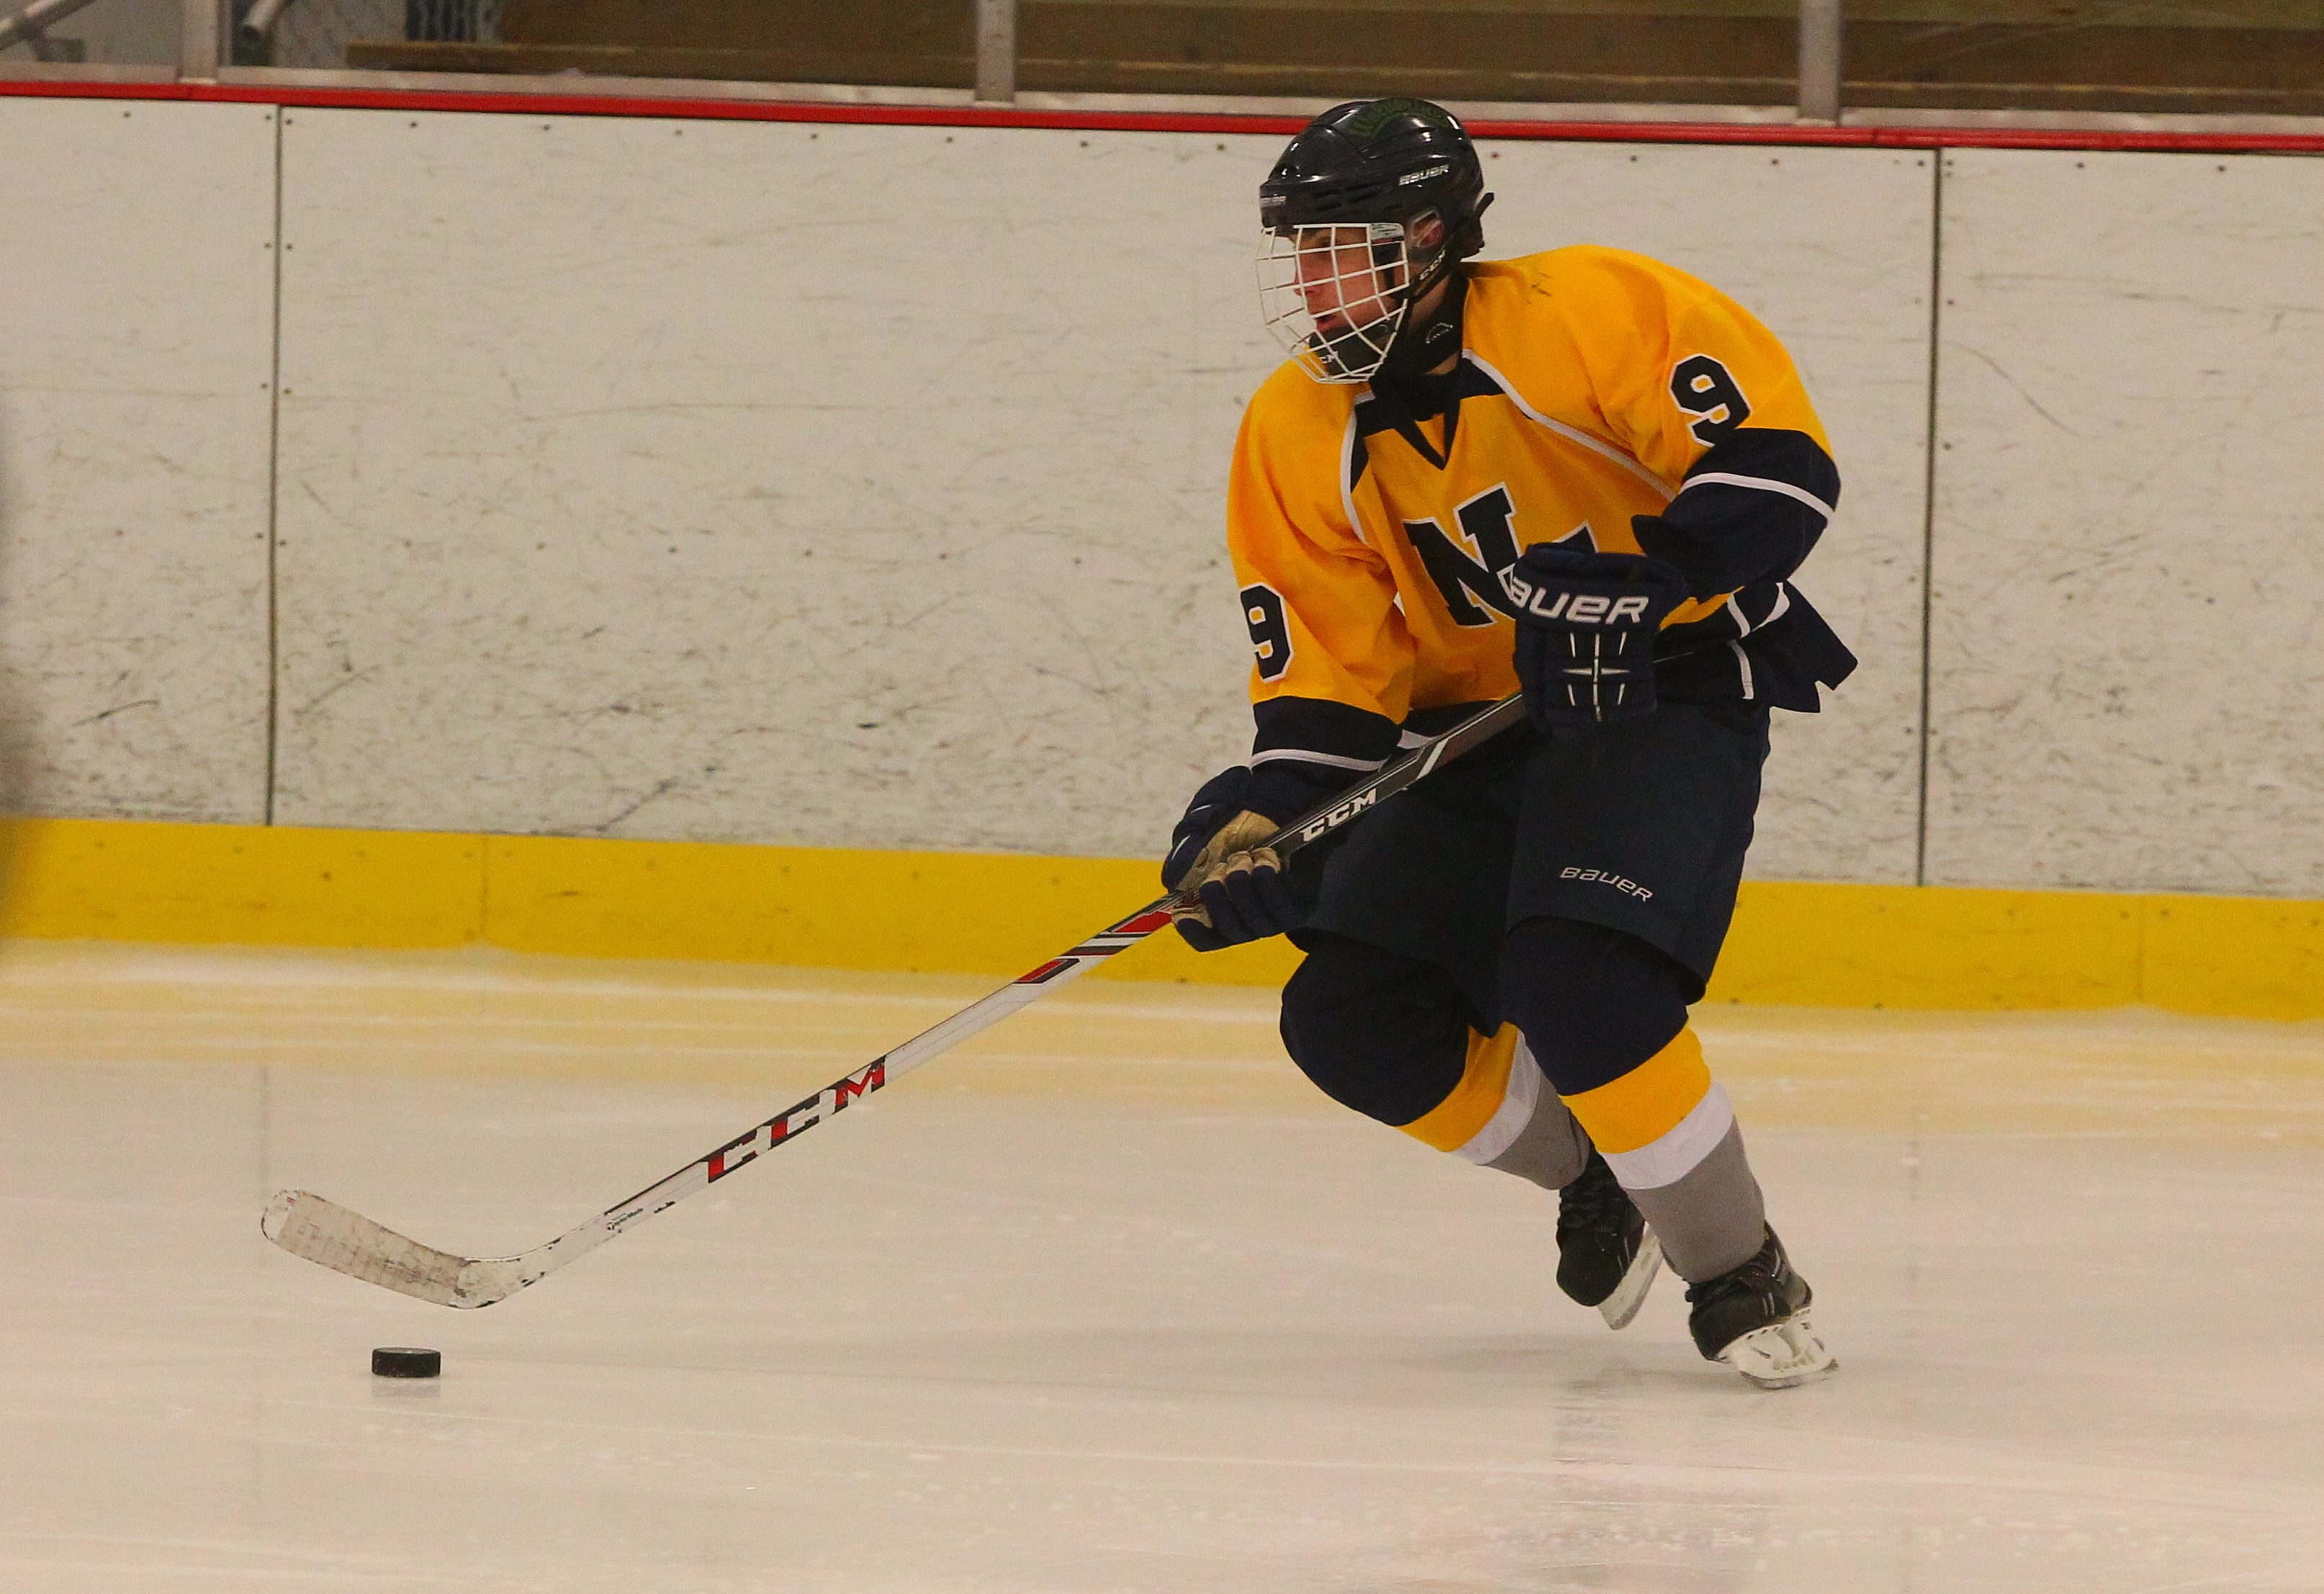 Niagara Falls hockey player Nicholas Lepine practices  for the first Cataract Hockey Classic at Hyde Park Ice Pavilion this weekend, which will see four area high schools and two from Rochester compete.